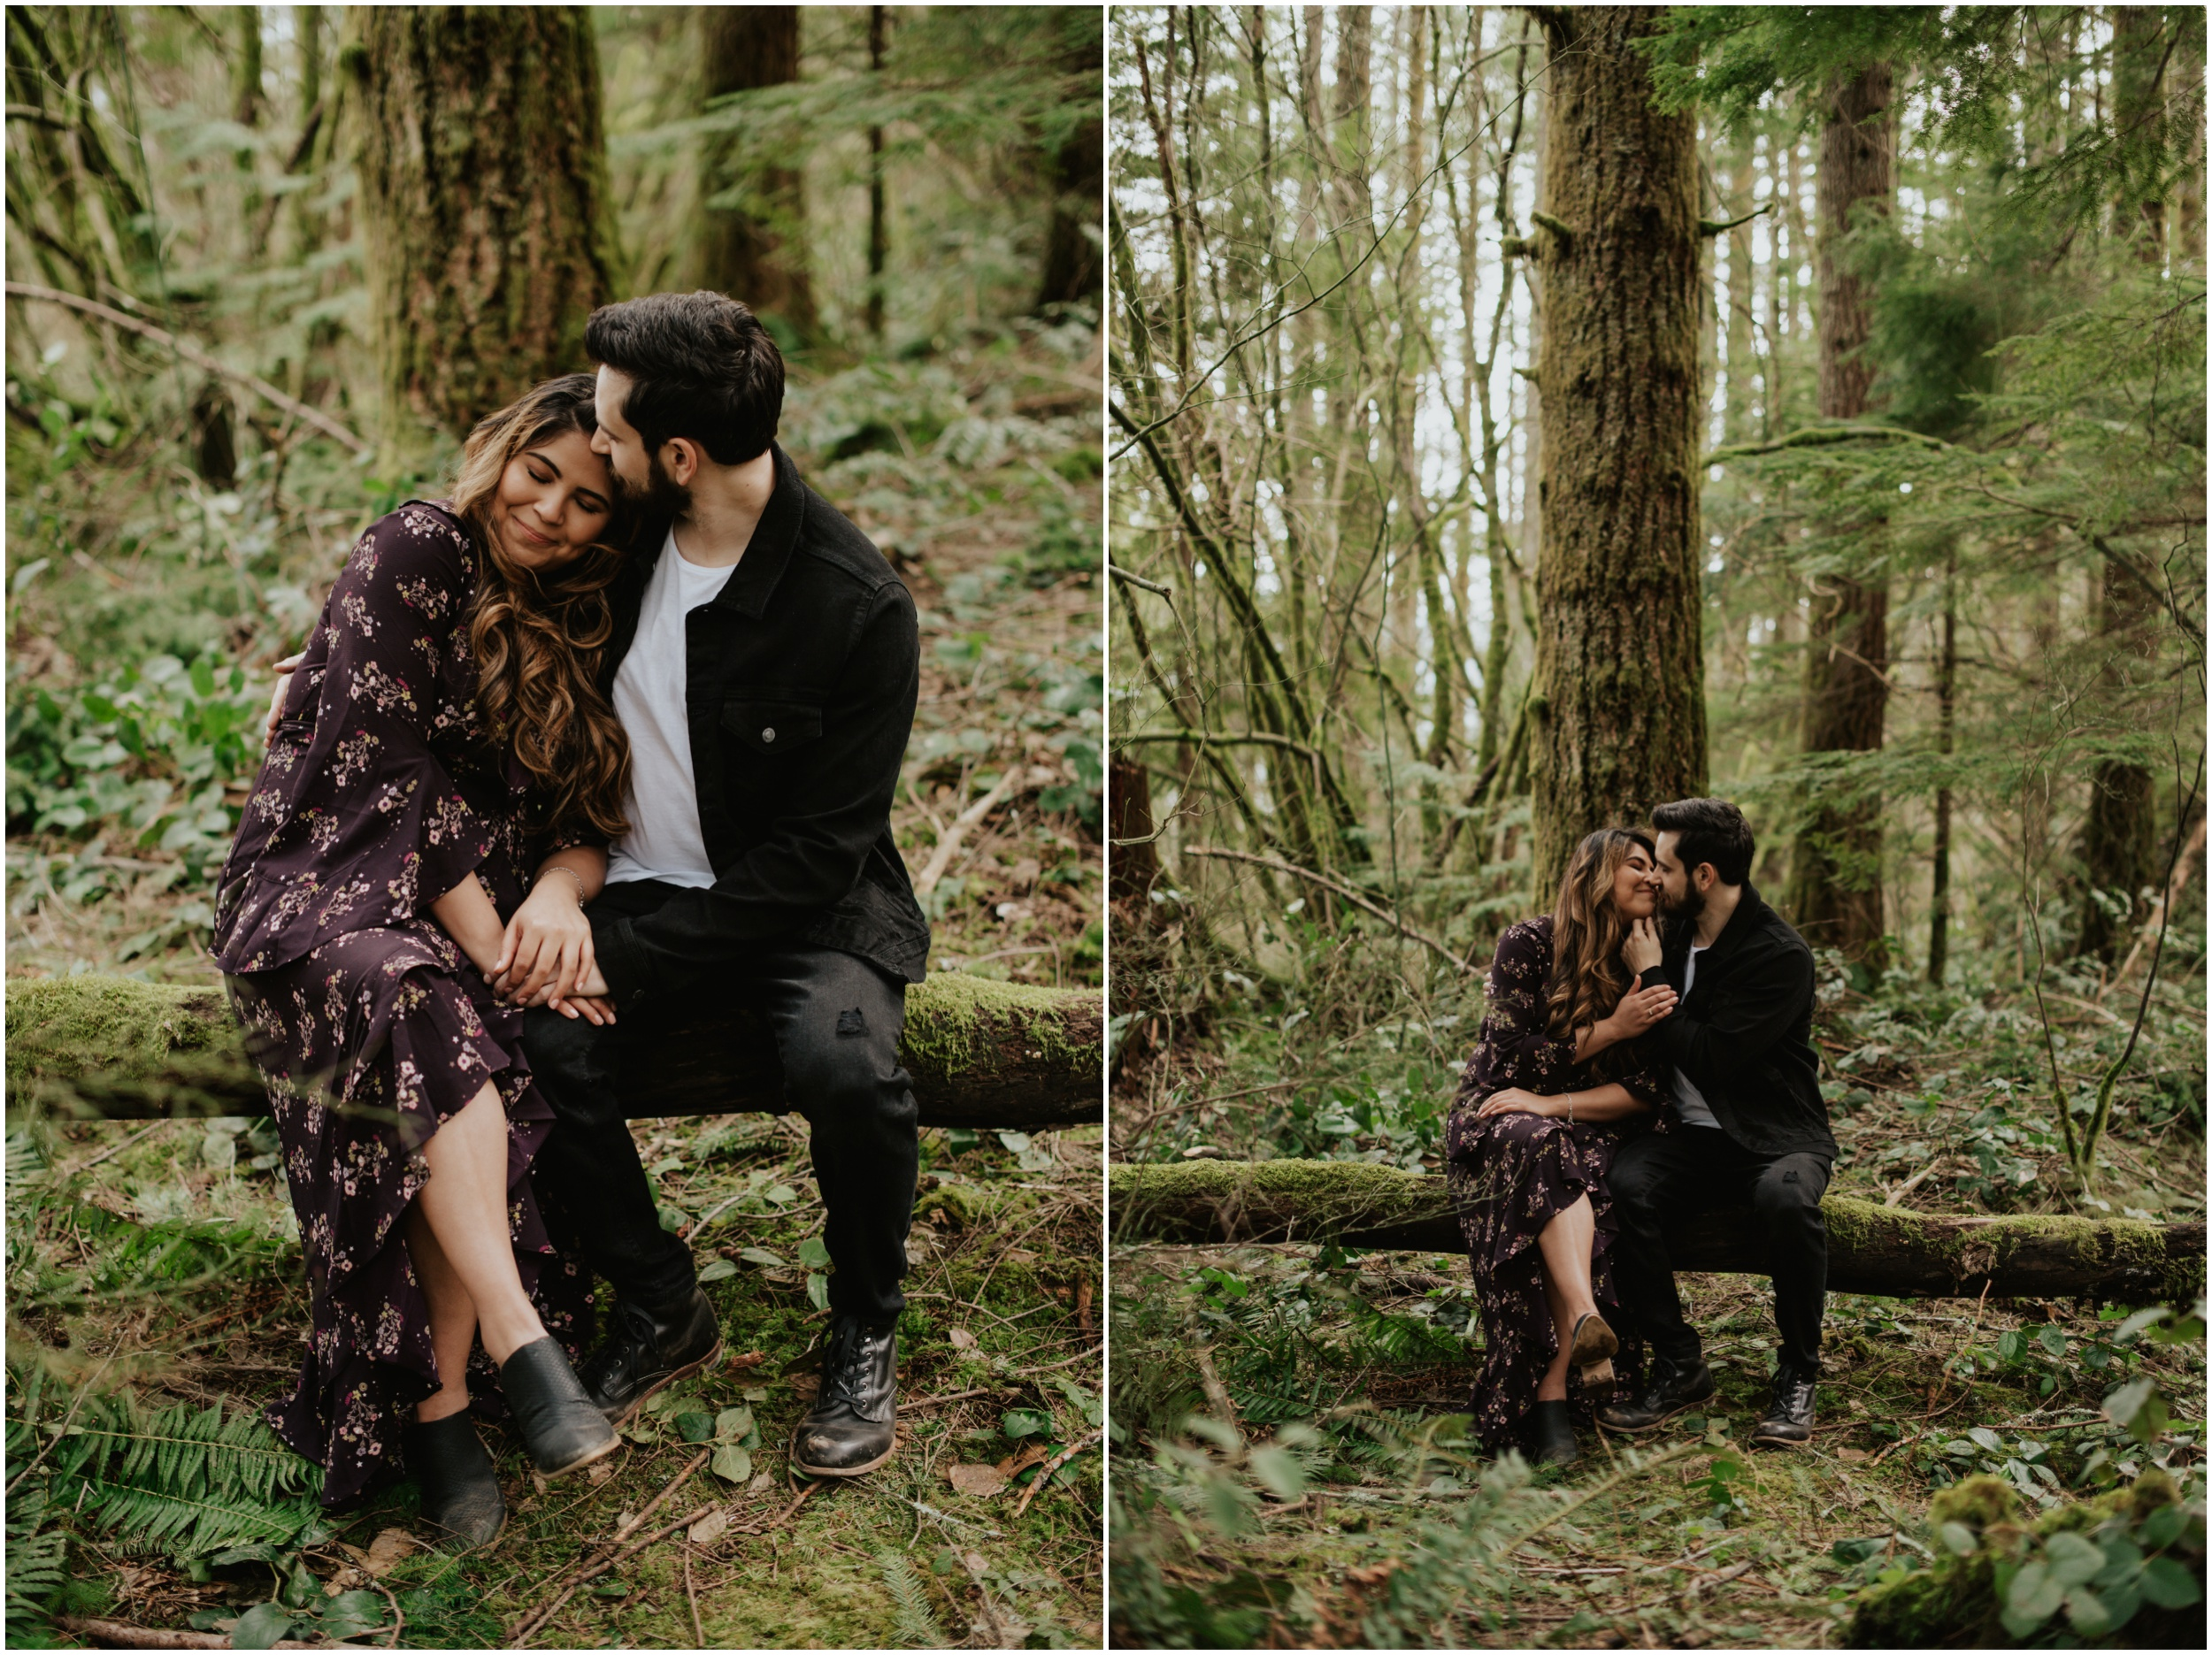 Couples engagement session in the woods Rattlesnake Lake, WA | Seattle Wedding Photographer www.riversandroadsphotography.com